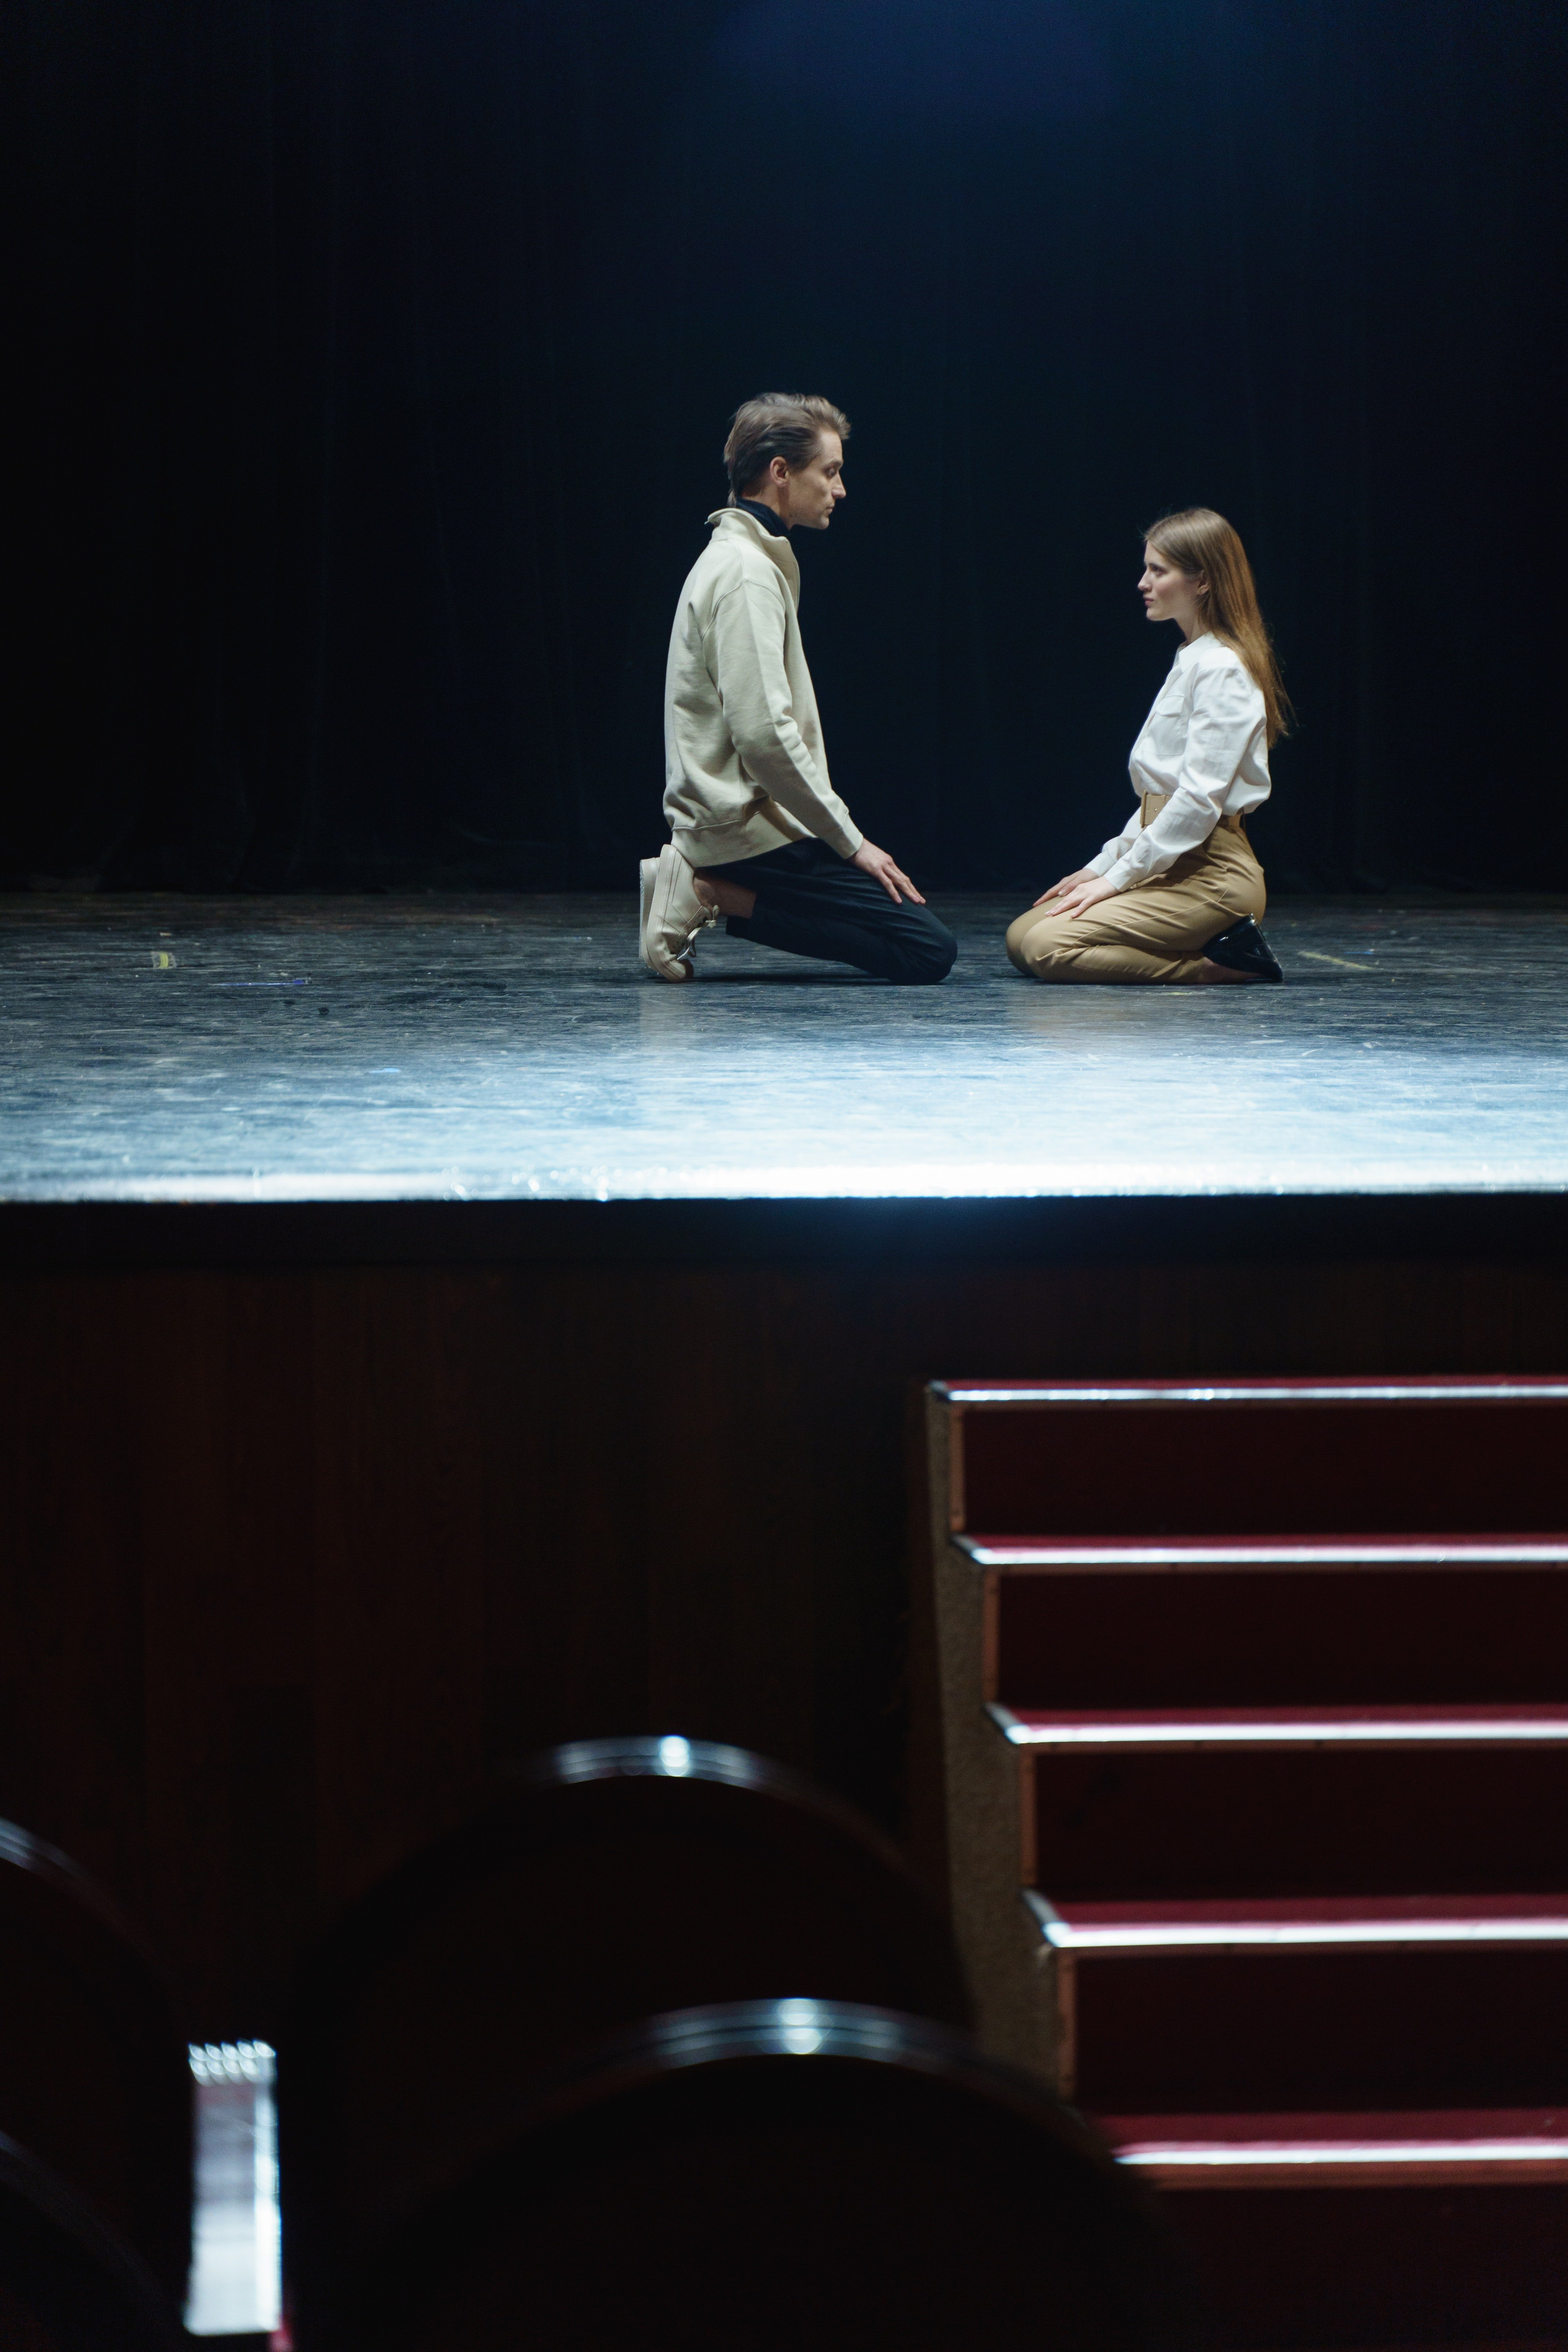 Our own Broadway play—not really a great idea in hindsight | Source: Pexels